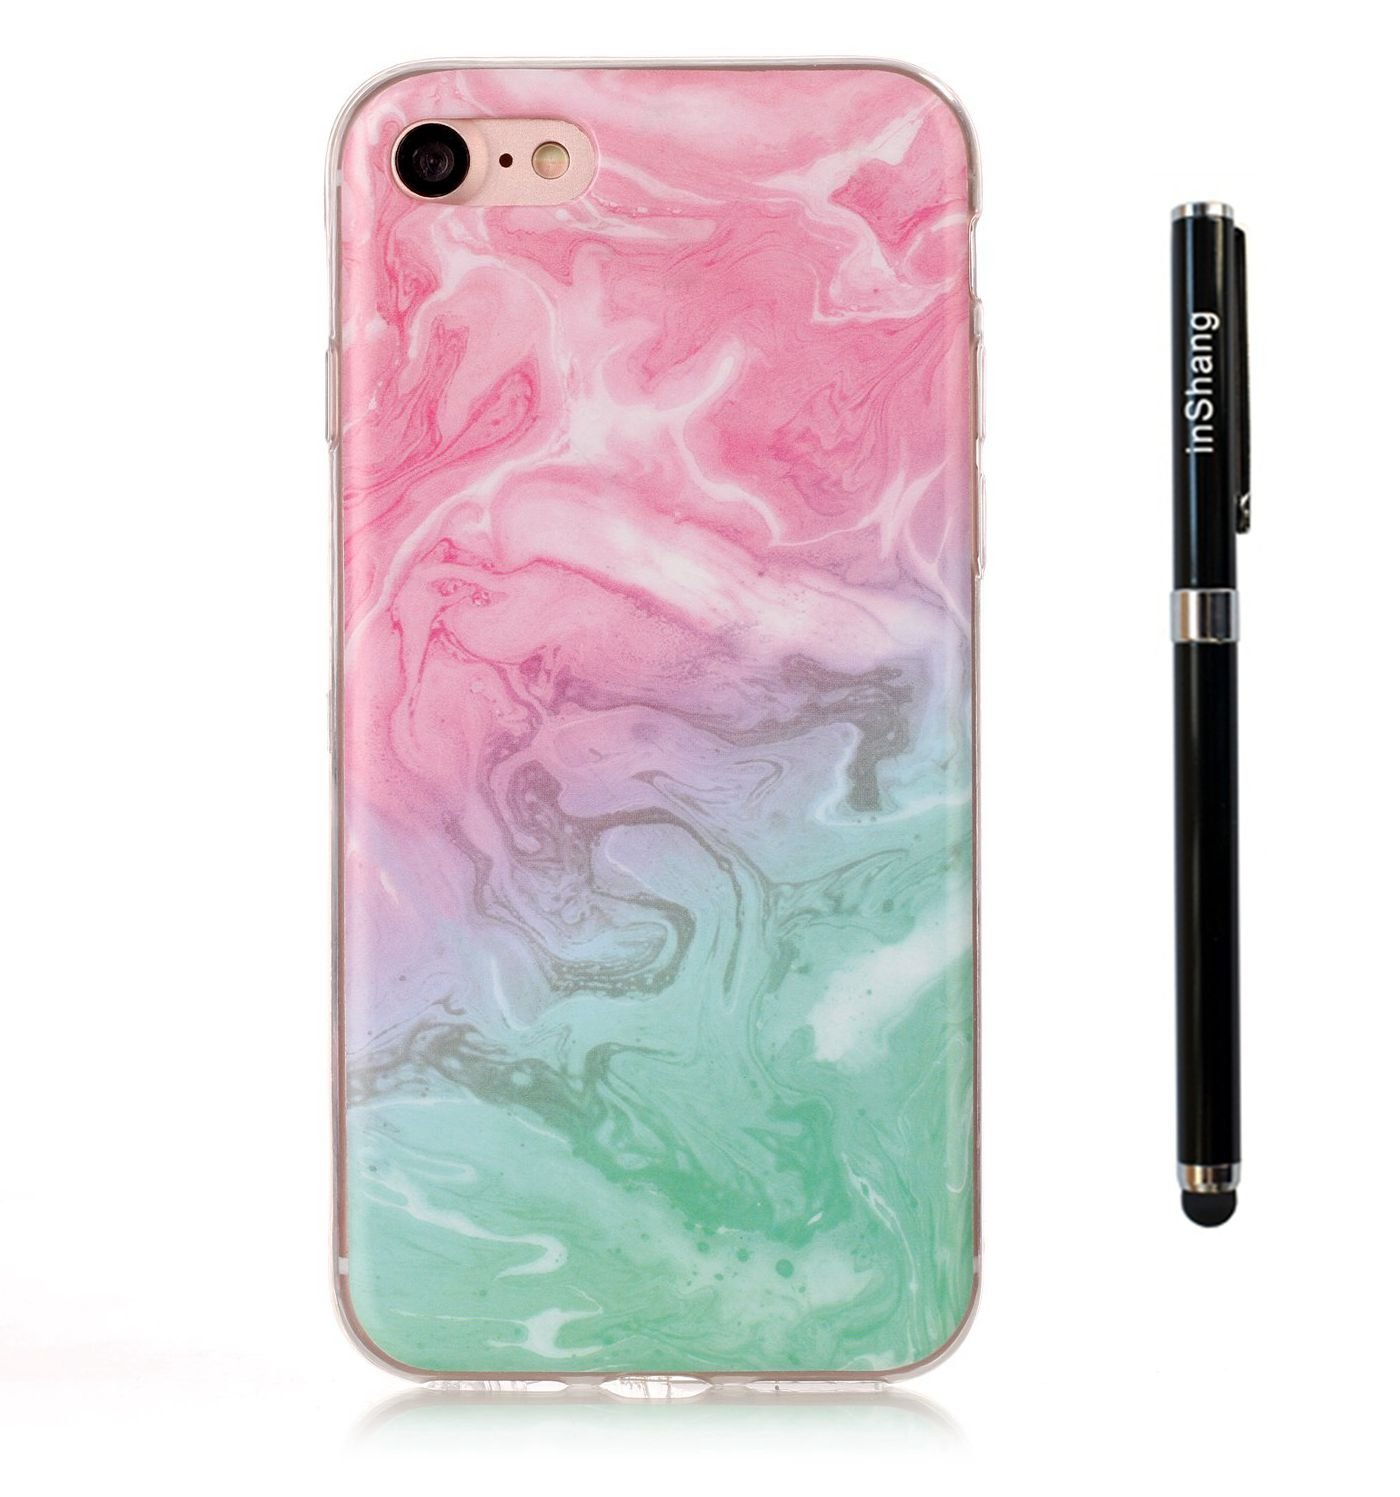 inShang Case for 4.7 iPhone 7 mobile phone Anti Slip,Ultra Slim and Lightweight,TPU material soft shell, Convenient Back Case for 4.7 iPhone 7 with marble pattern+1pc business stylus Pen